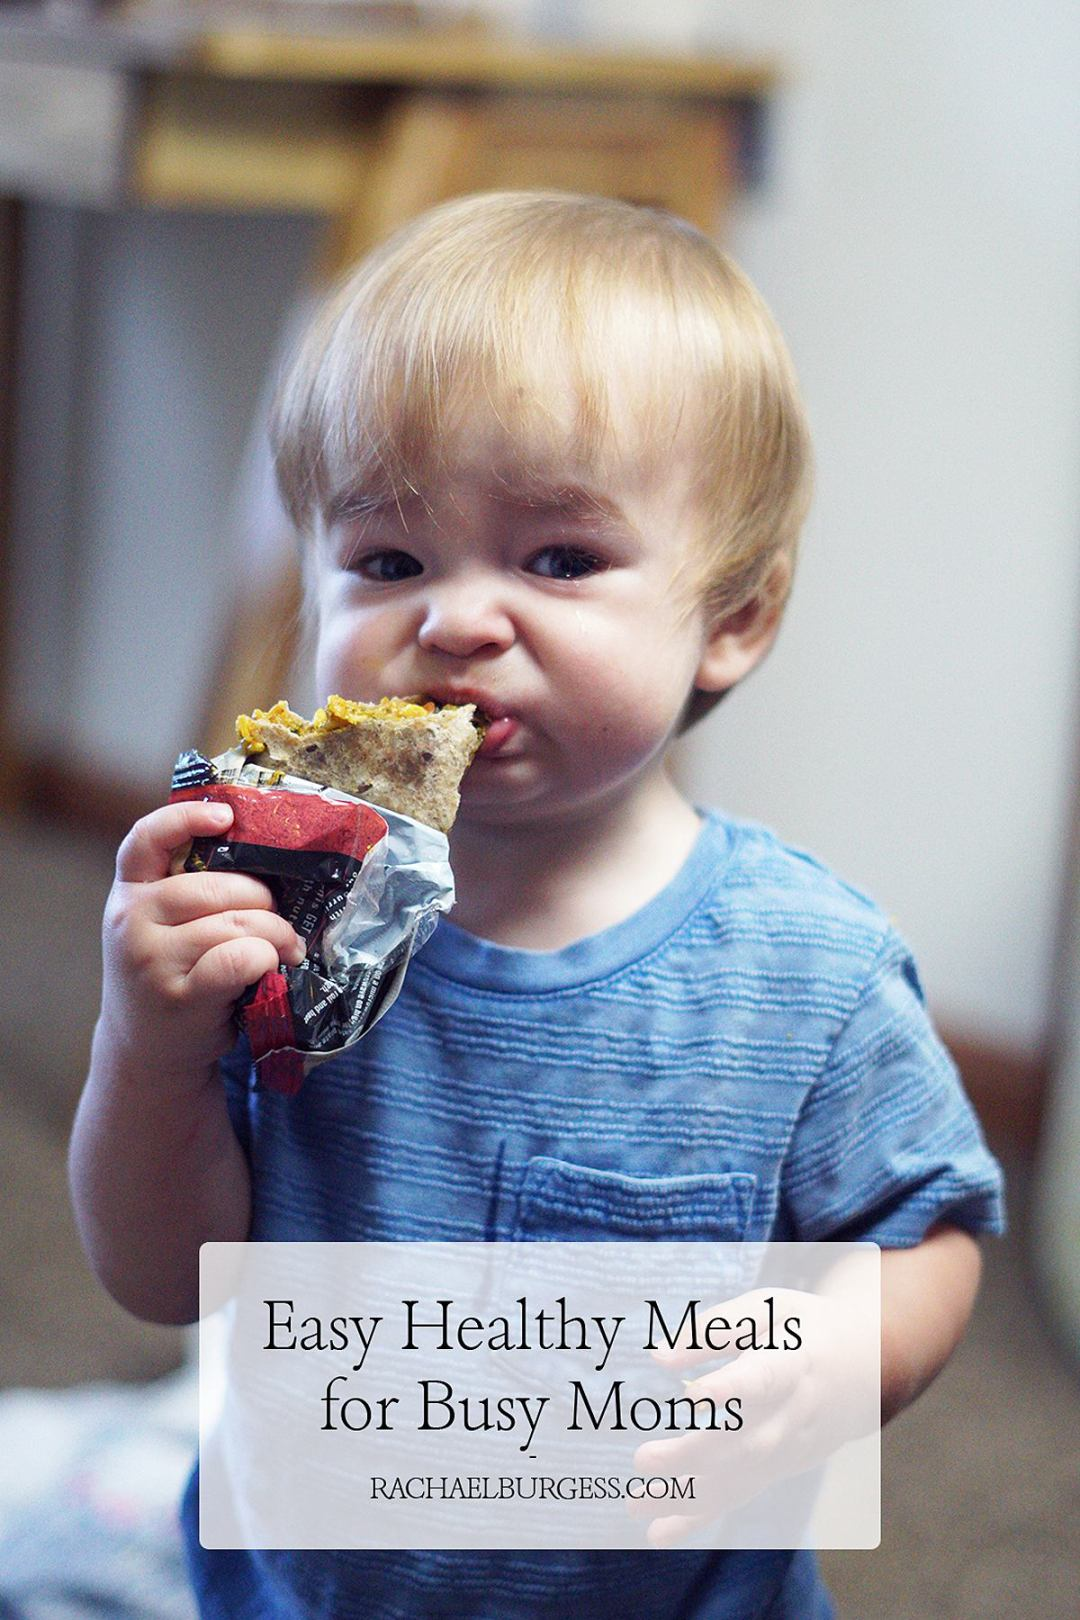 Easy and Healthy Meals for Busy Moms | Rachael Burgess